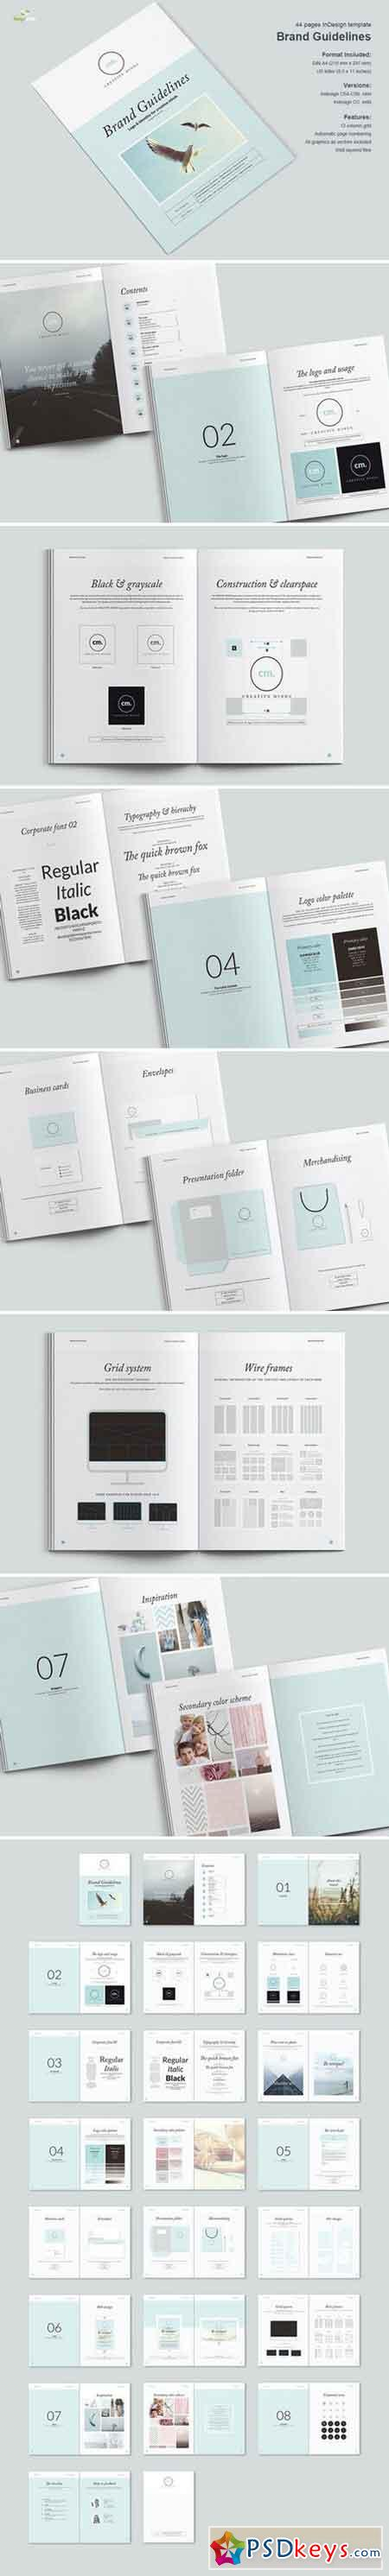 Brand Guidelines 748146